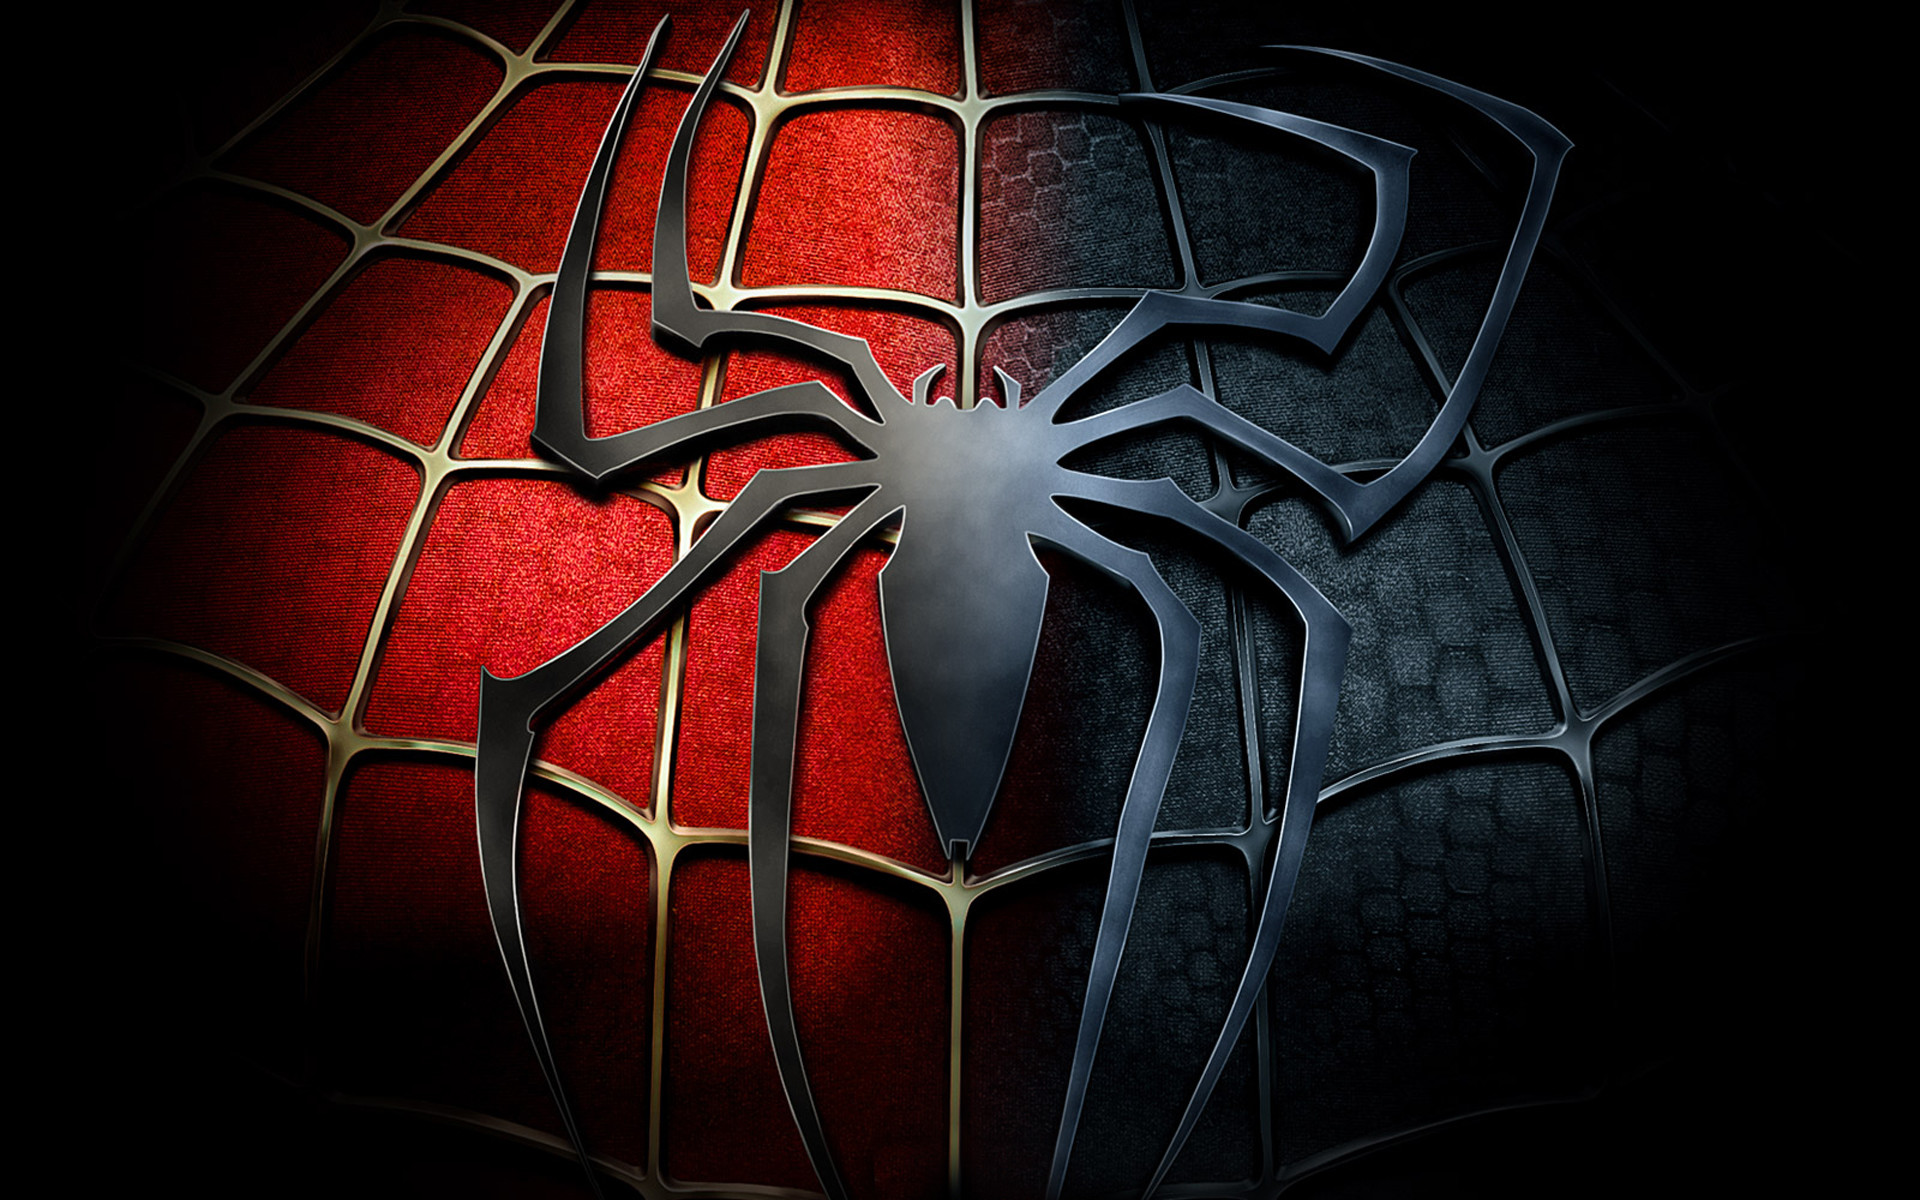 wallpaper wiki cool black spiderman iphone background pic